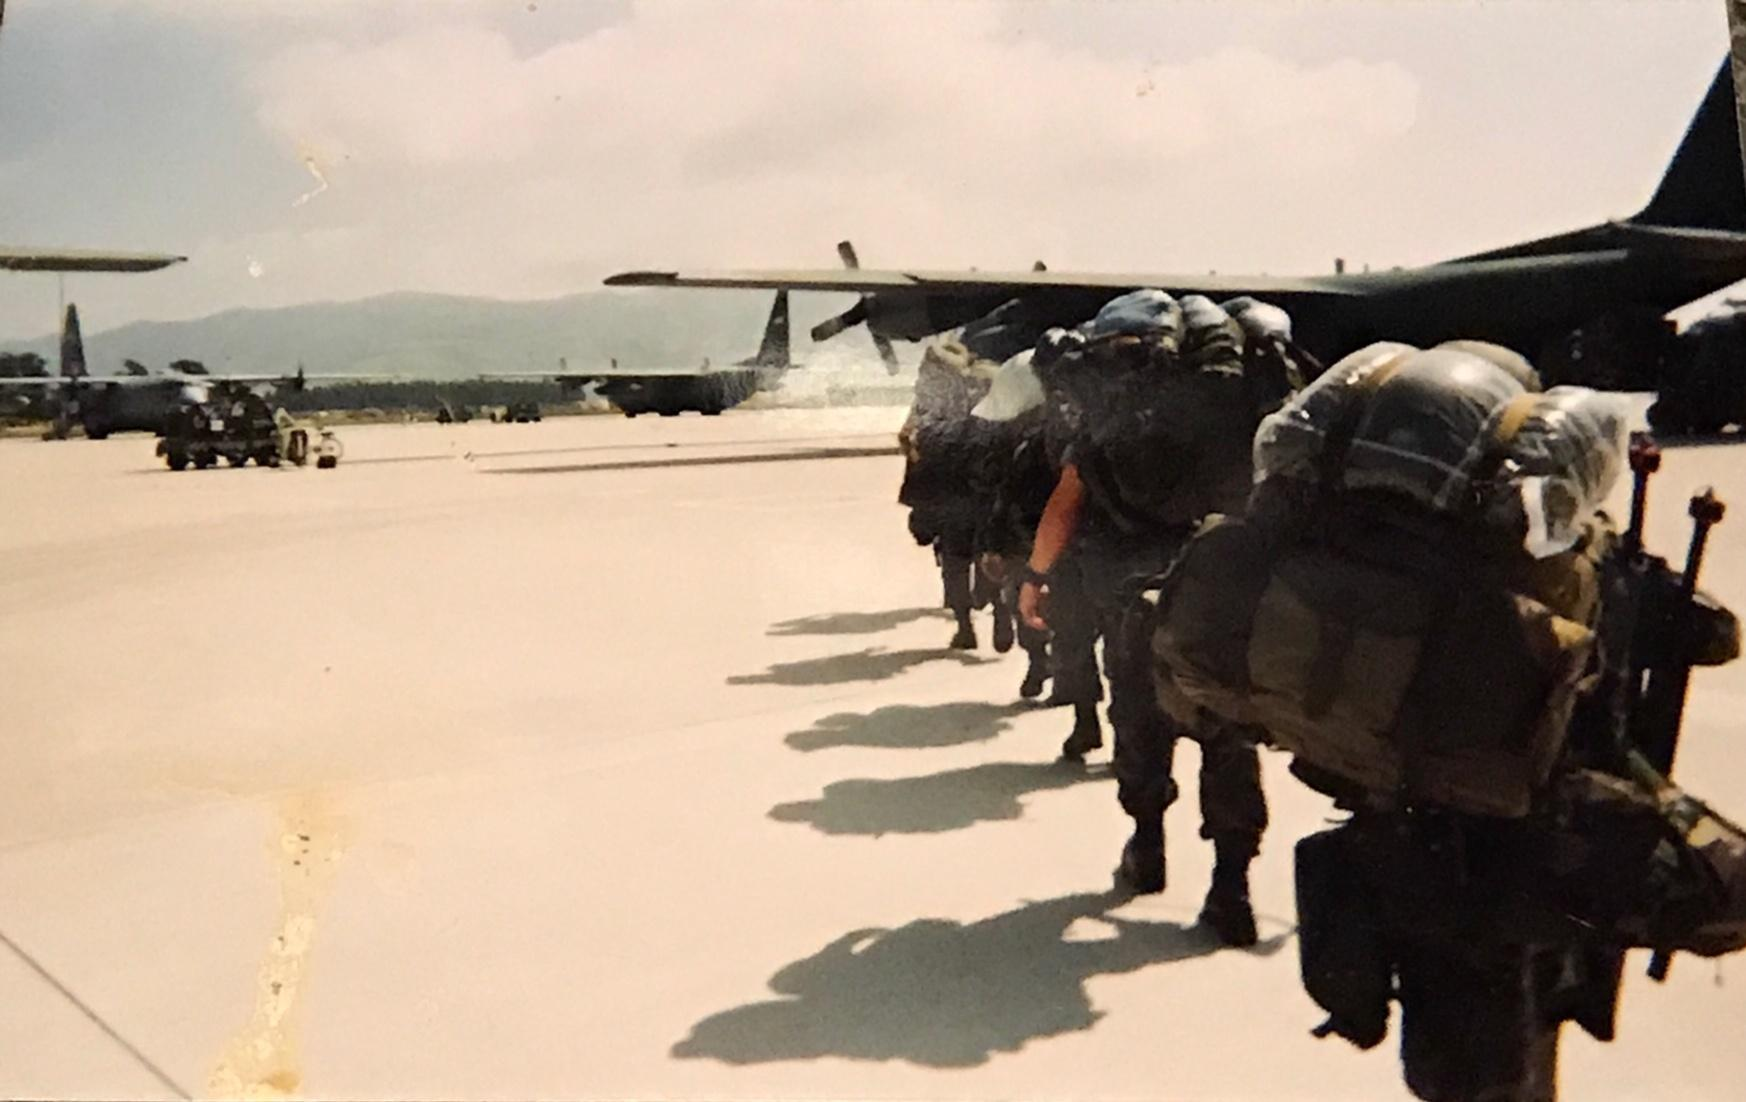 Air force soldiers on the tarmac walking towards a large military plane